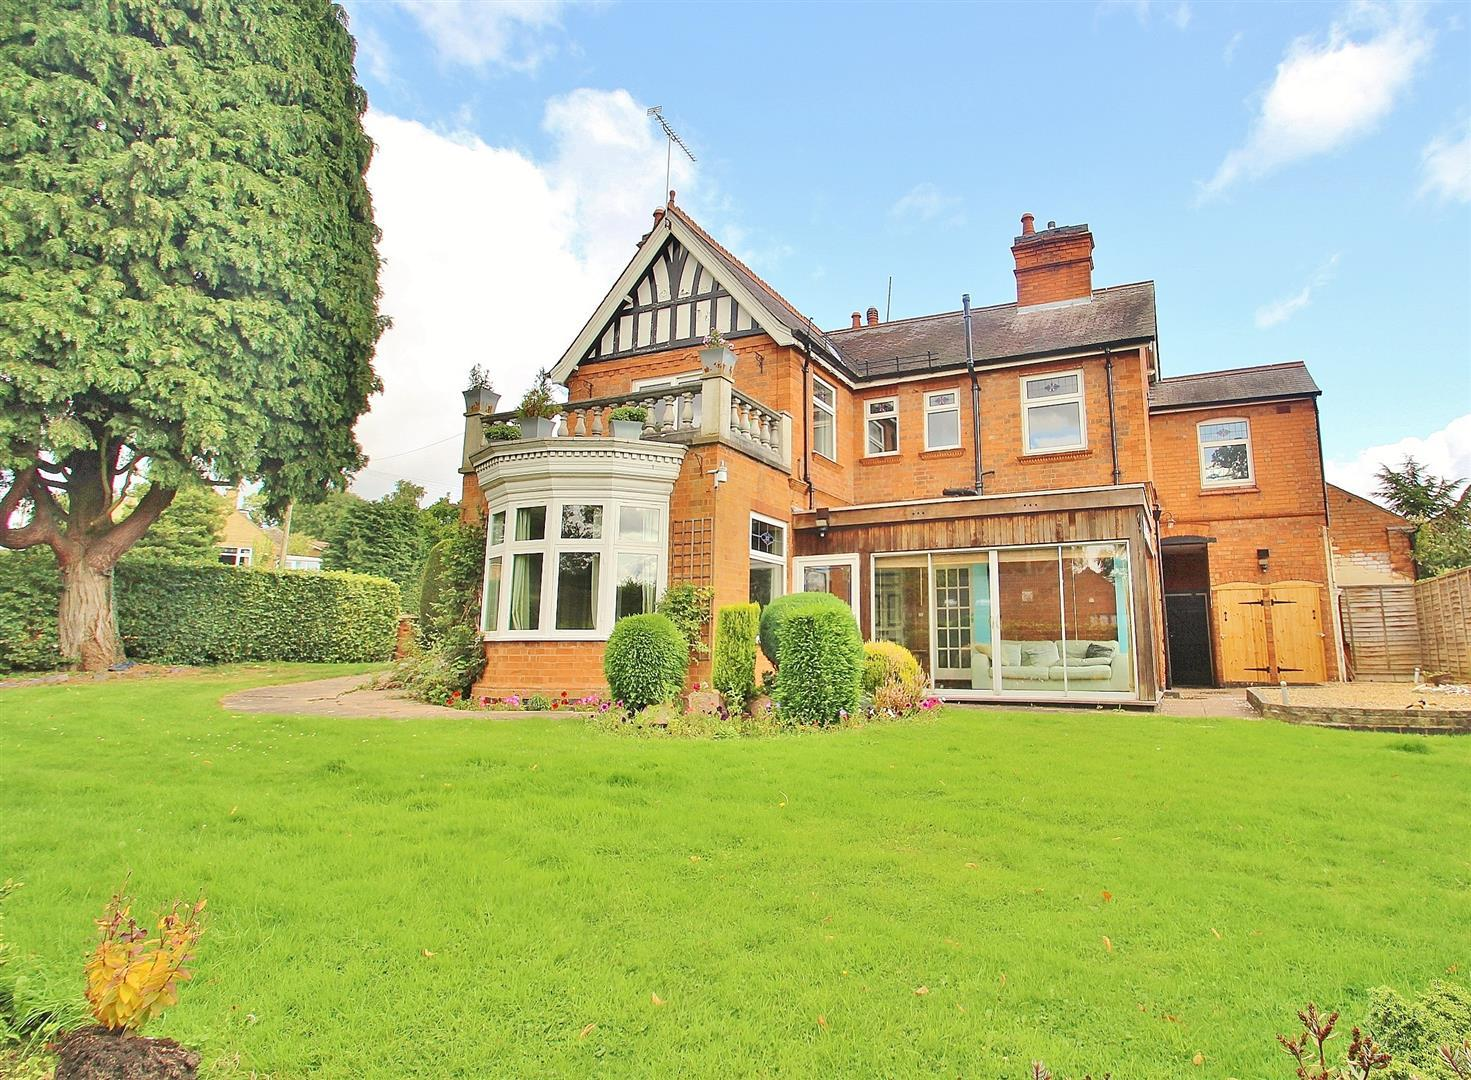 3 Bedrooms Property for sale in Woodgate, Rothley, Leicestershire